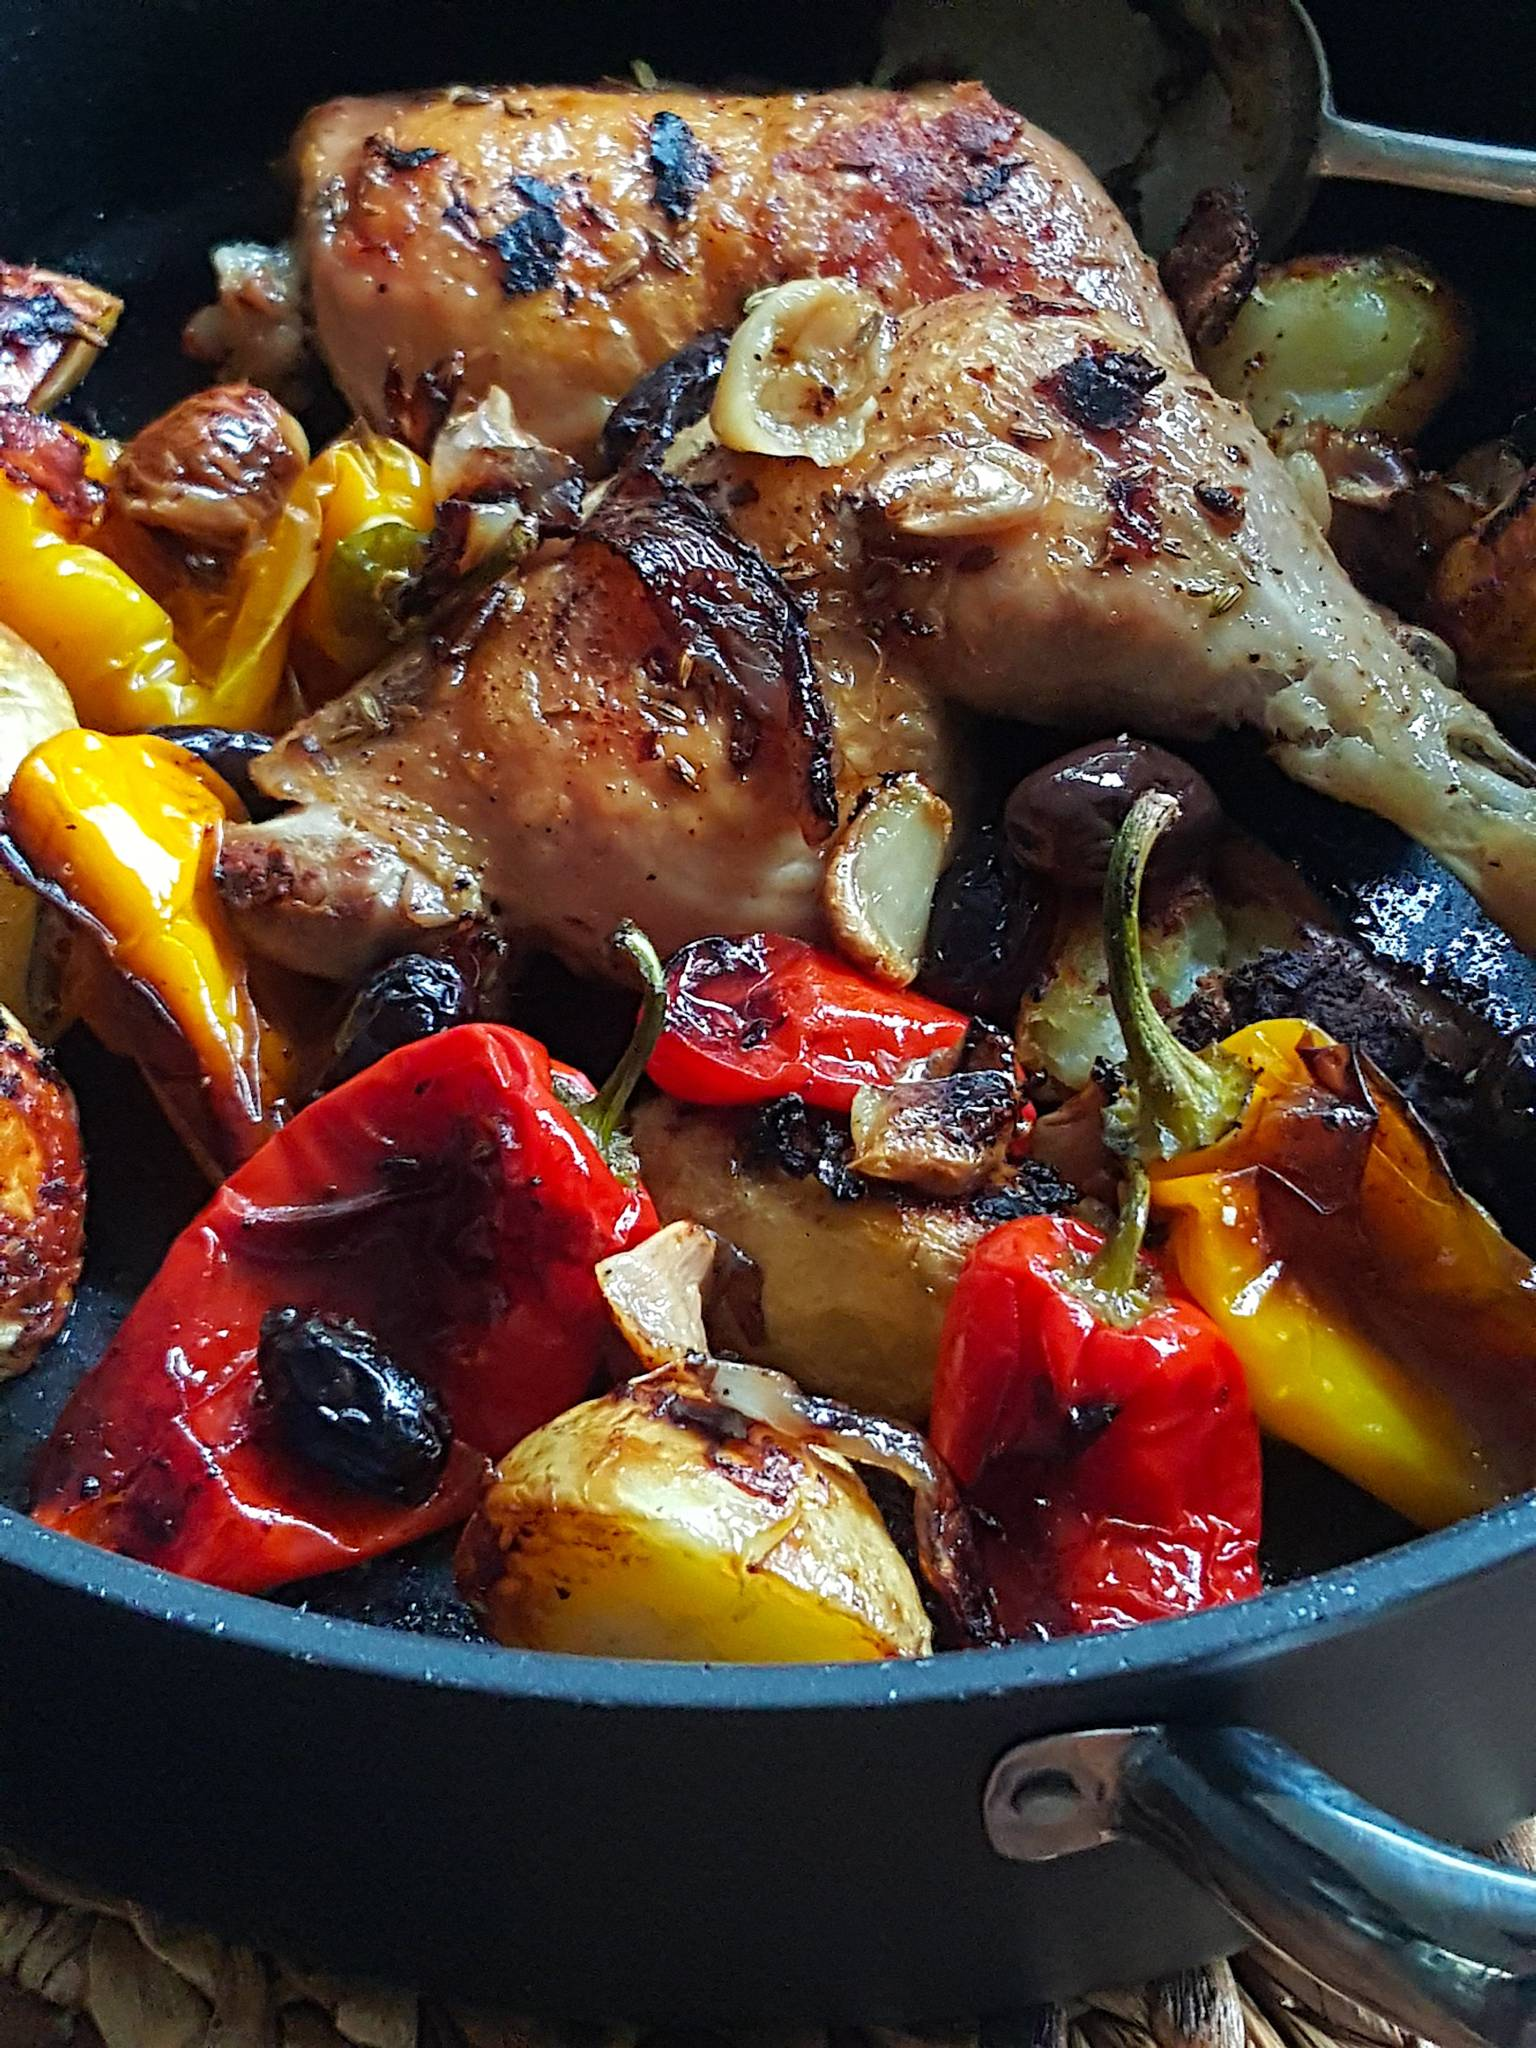 Scrumptious Baked Chicken with Peppers